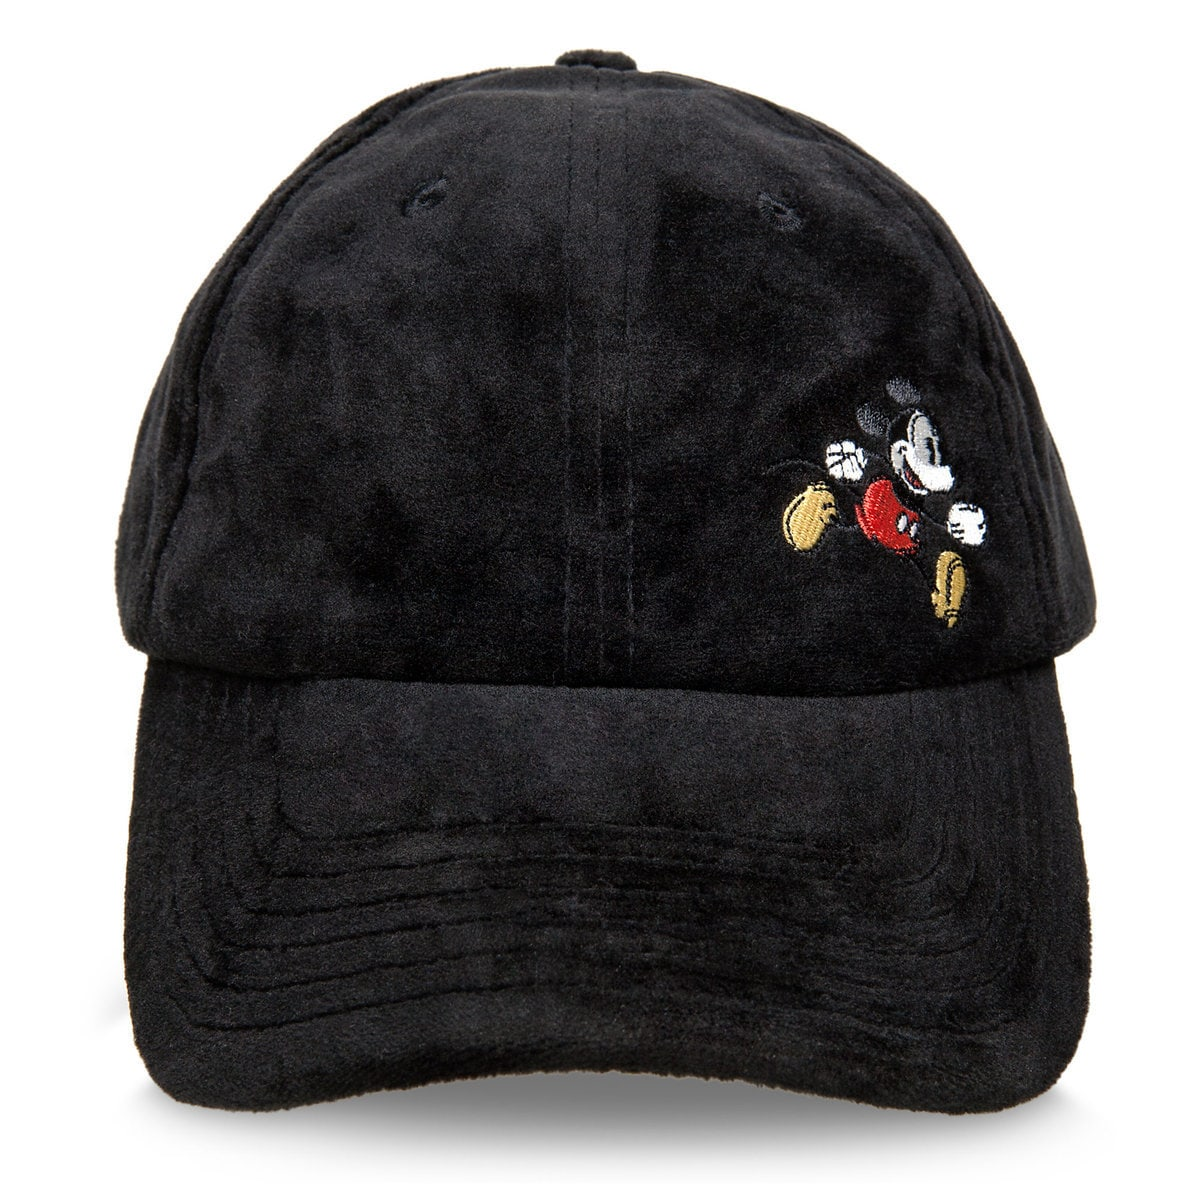 81e0c0c7f52 Product Image of Mickey Mouse Embroidered Baseball Cap   1